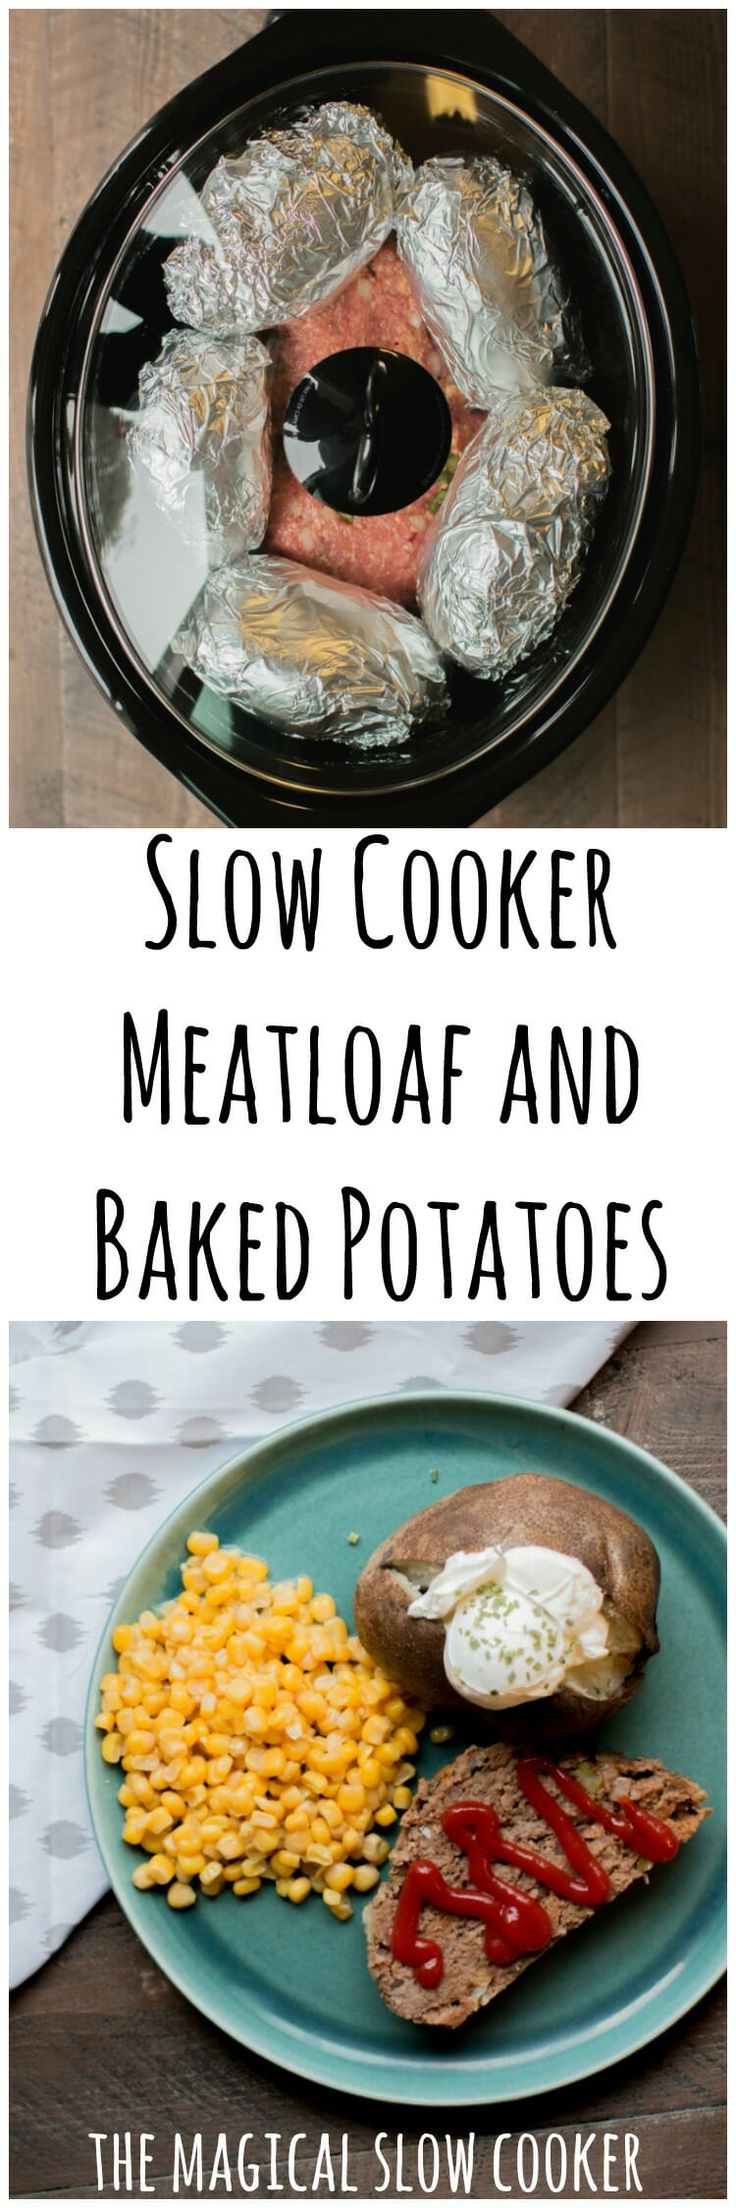 Slow Cooker Meatloaf and Baked Potatoes #slowcooker #crockpot #easyrecipes #mealoaf